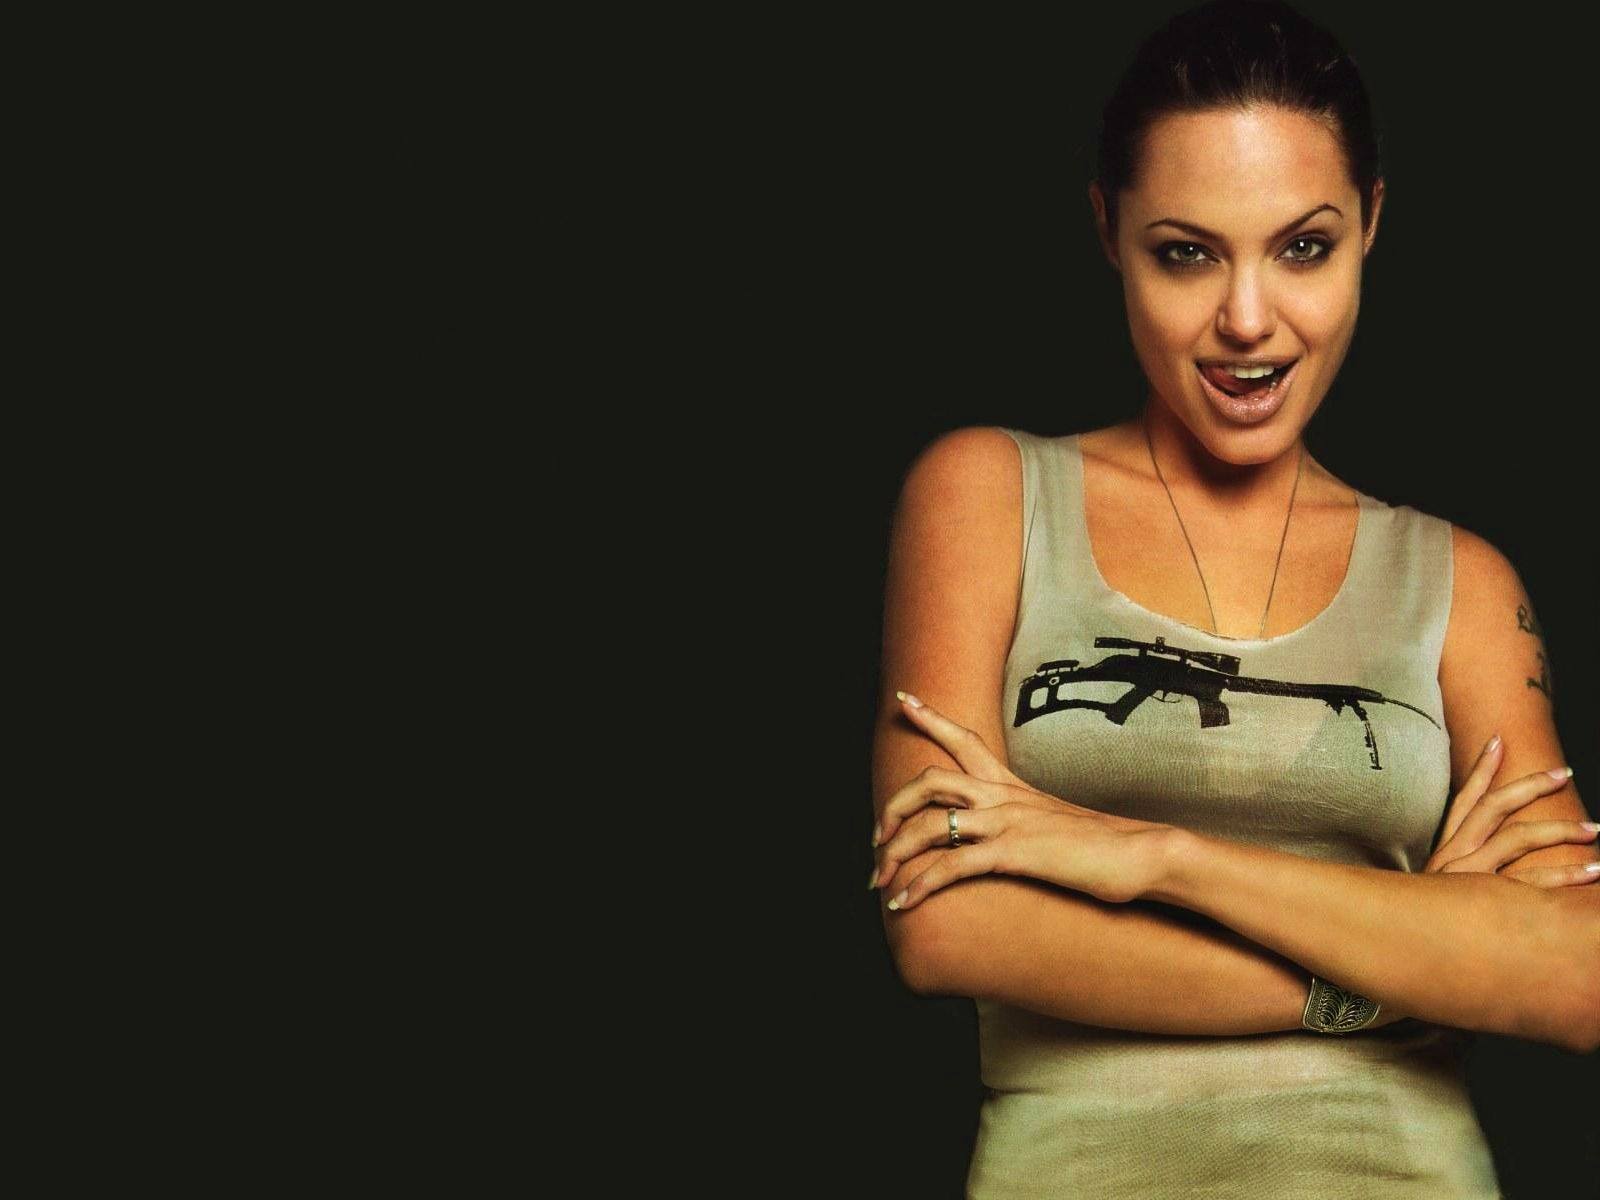 angelina jolie wallpaper free hd wallpapers